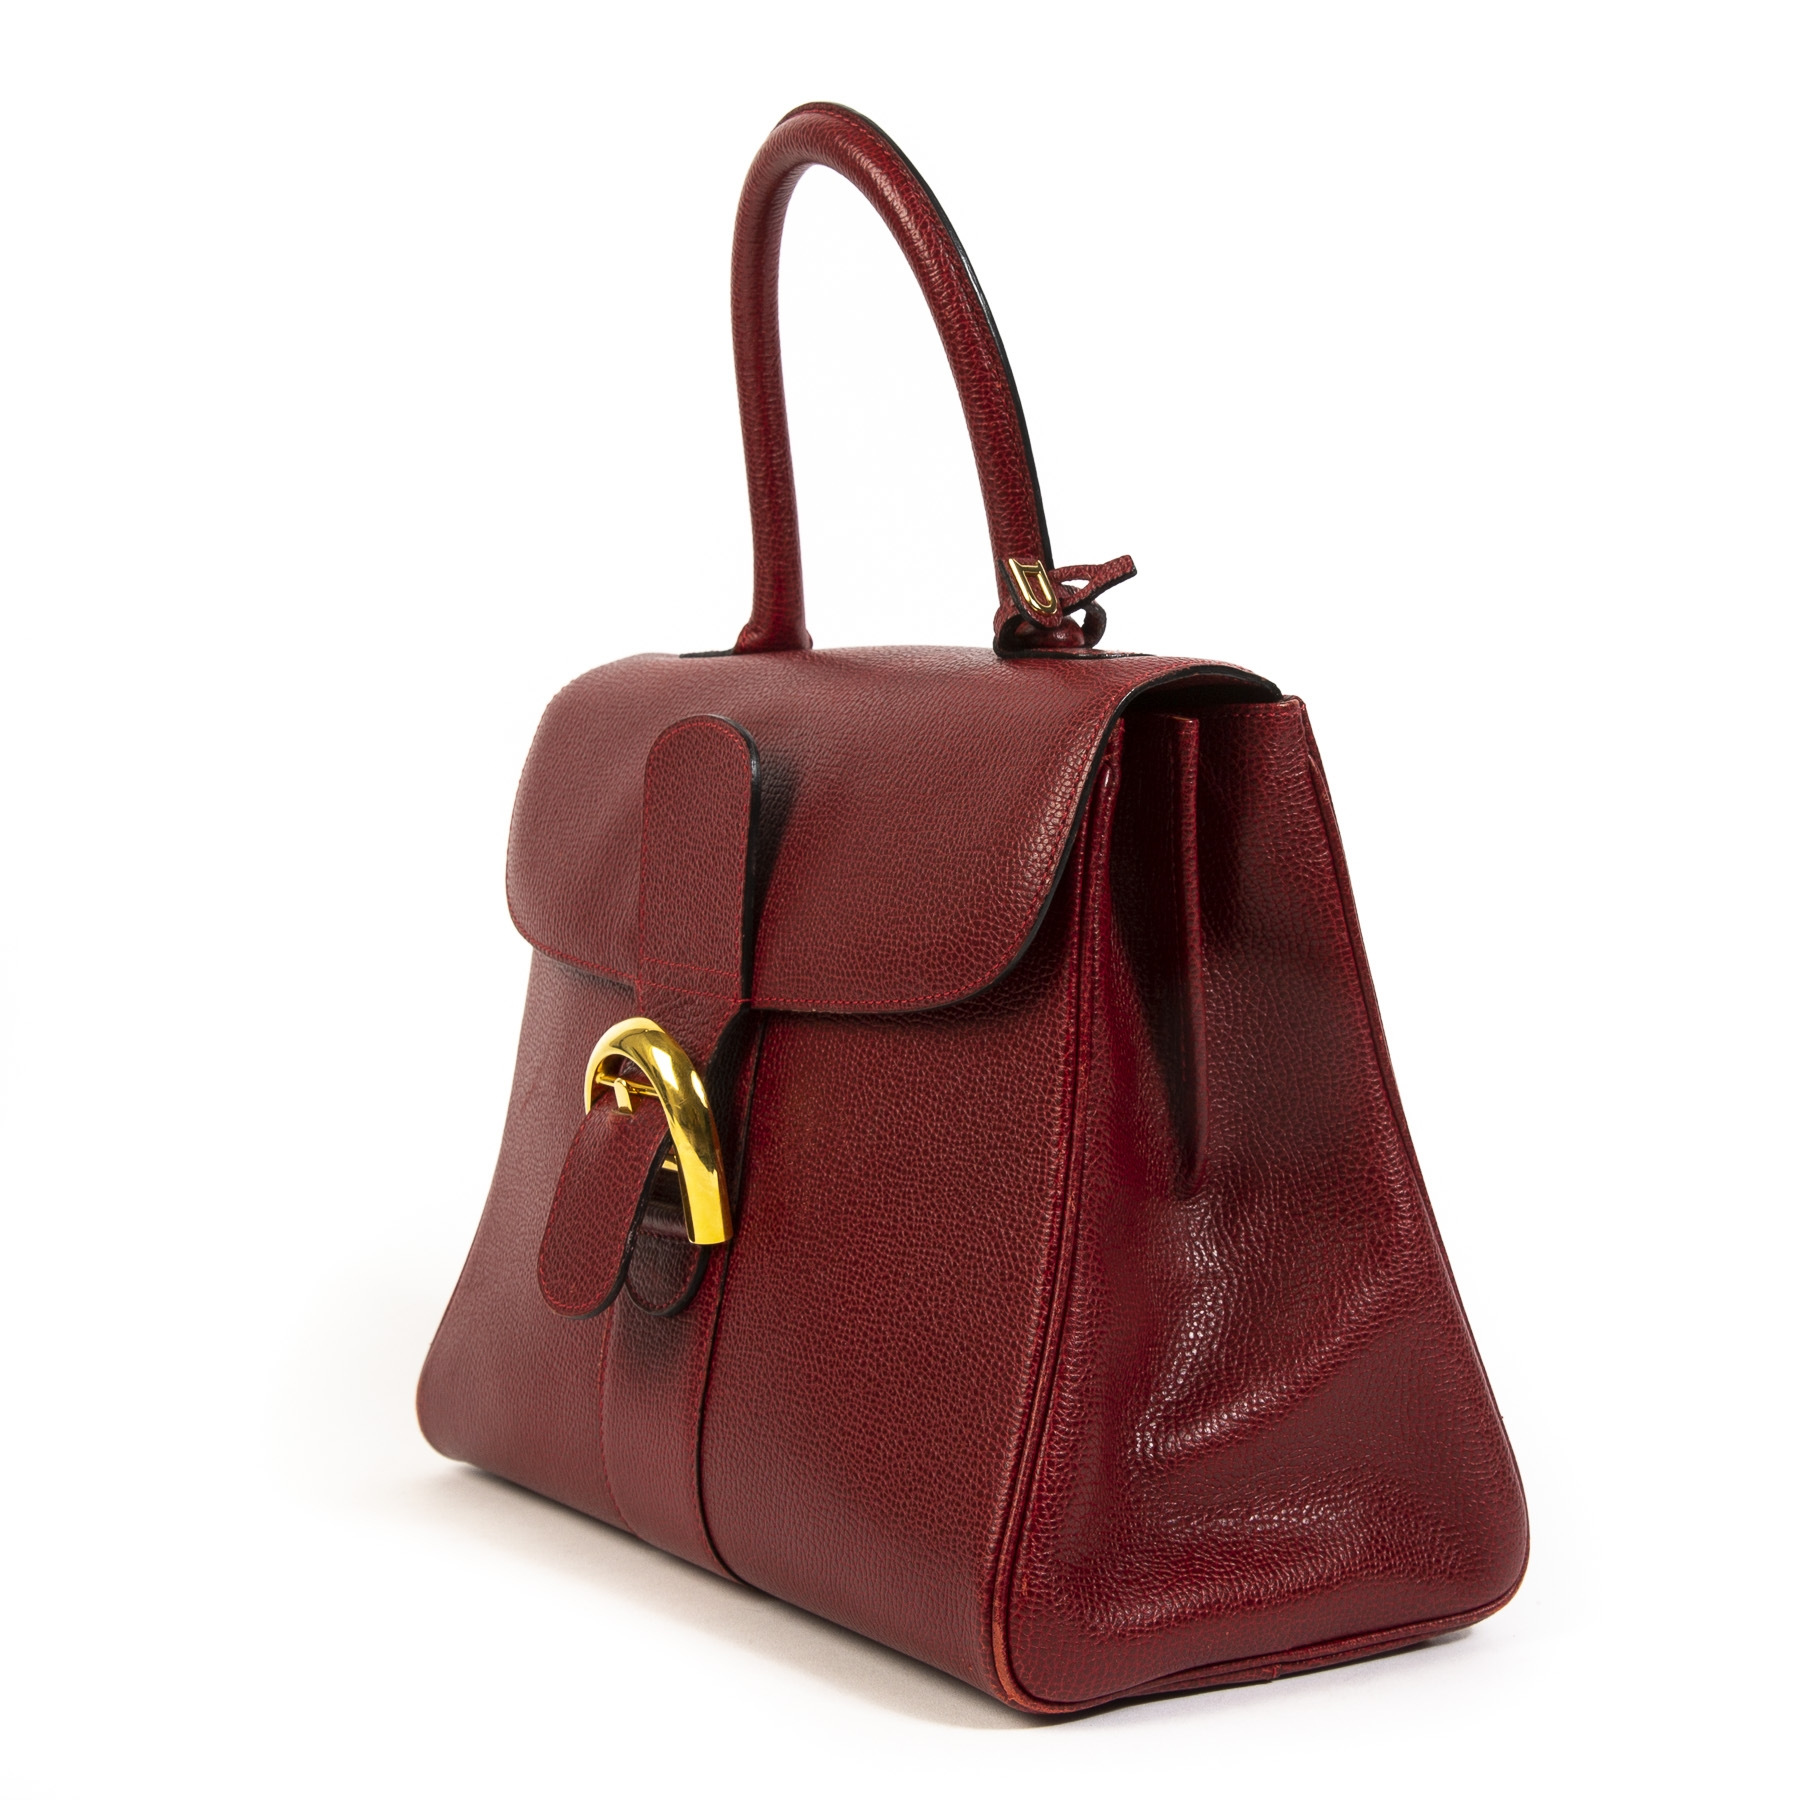 Buy this authentic second-hand vintage Delvaux Brillant MM Burgundy at online webshop LabelLOV.